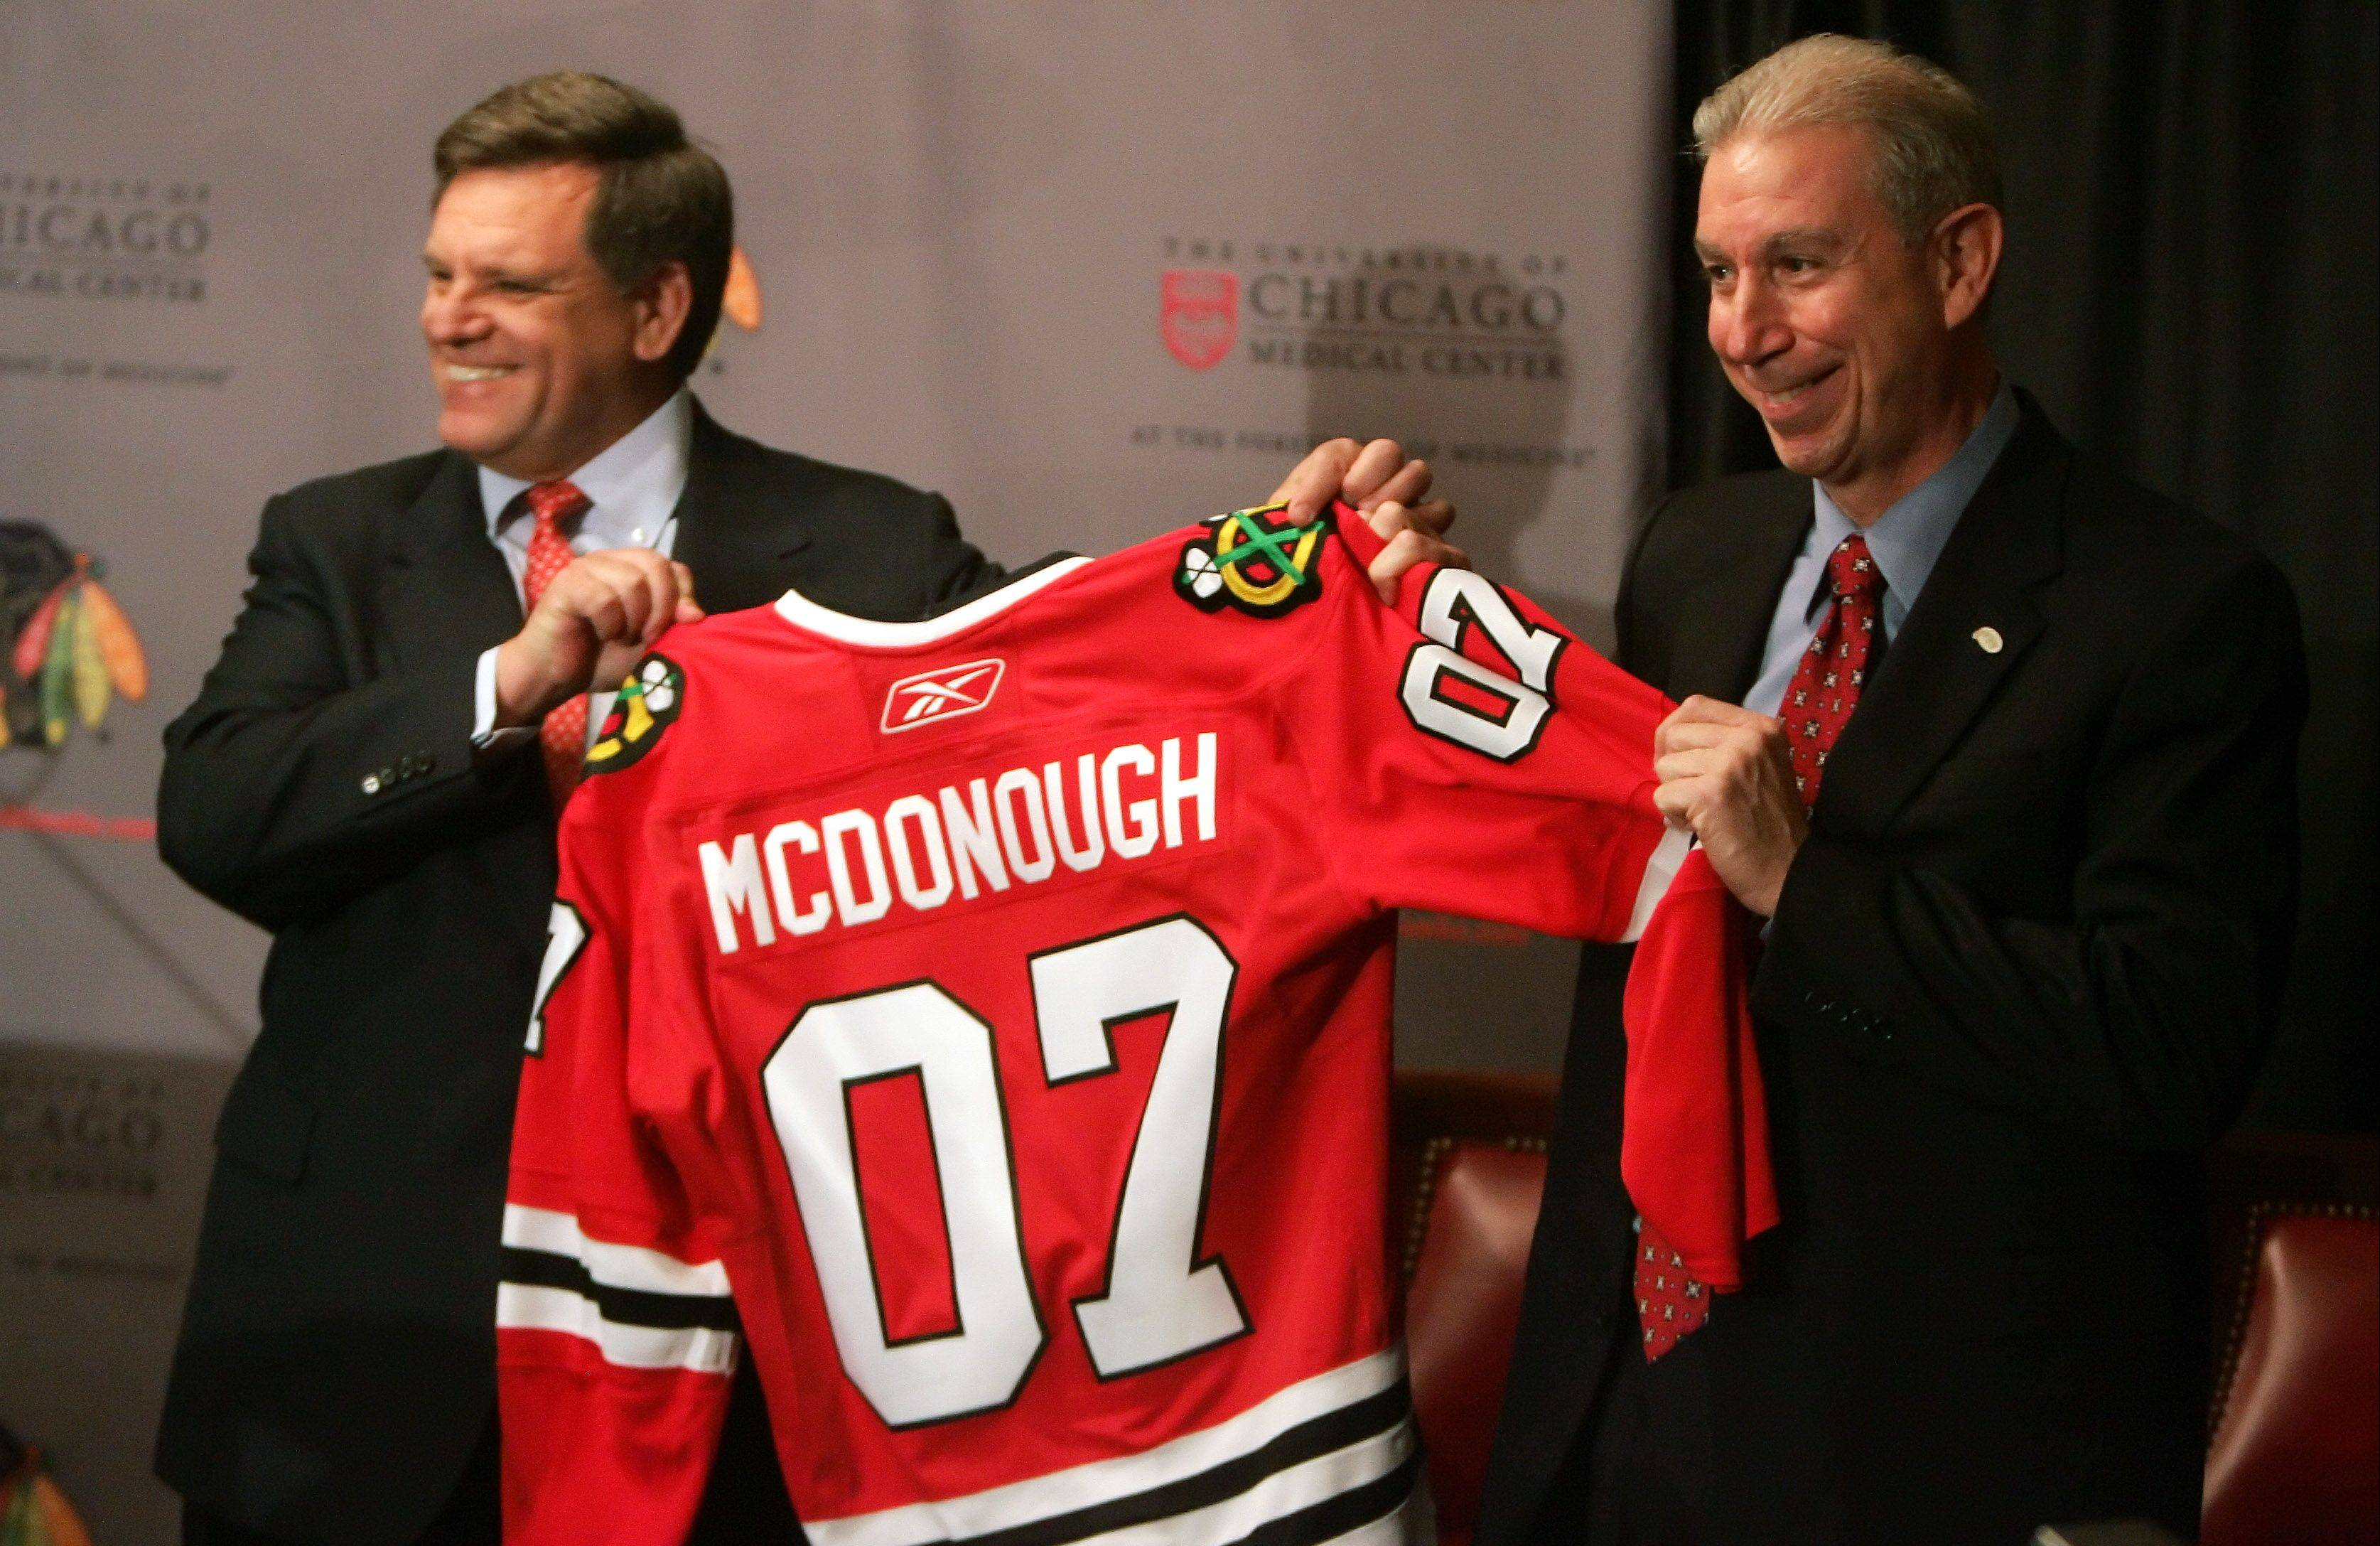 Five years after Blackhawks chairman Rocky Wirtz, left, joined forces with John McDonough as team president, the franchise has a Stanley Cup title and four straight playoff appearances.